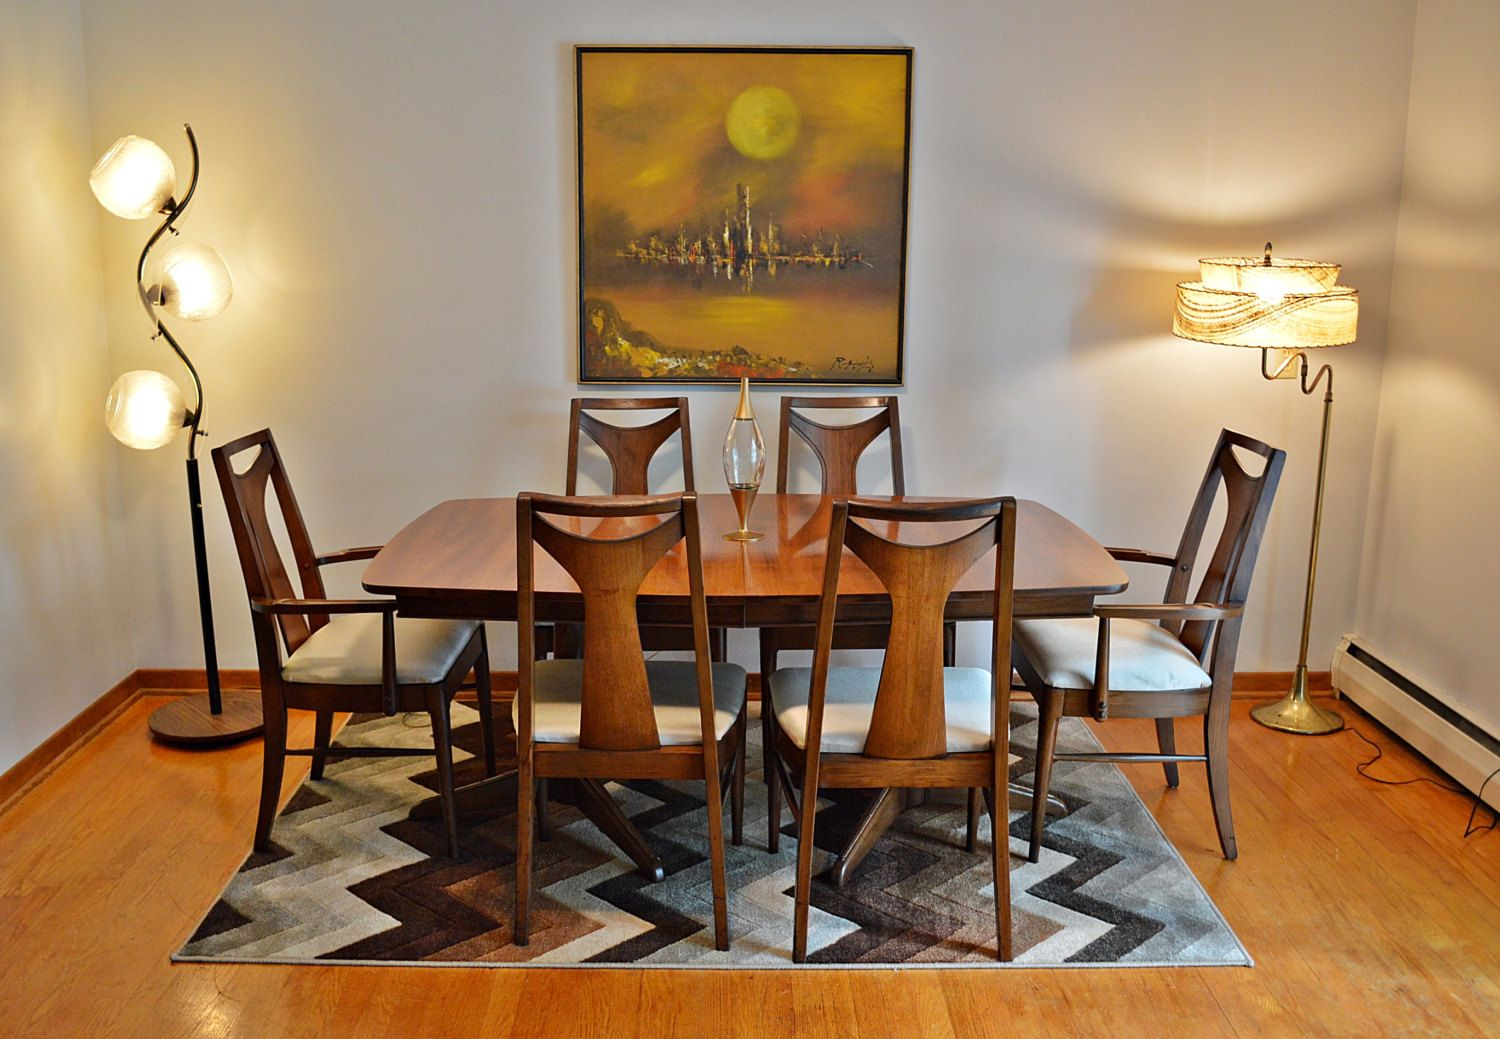 Mid Century Kent Coffey Perspecta Dining Table With 6 Chairs By Dirtysantiques On Etsy